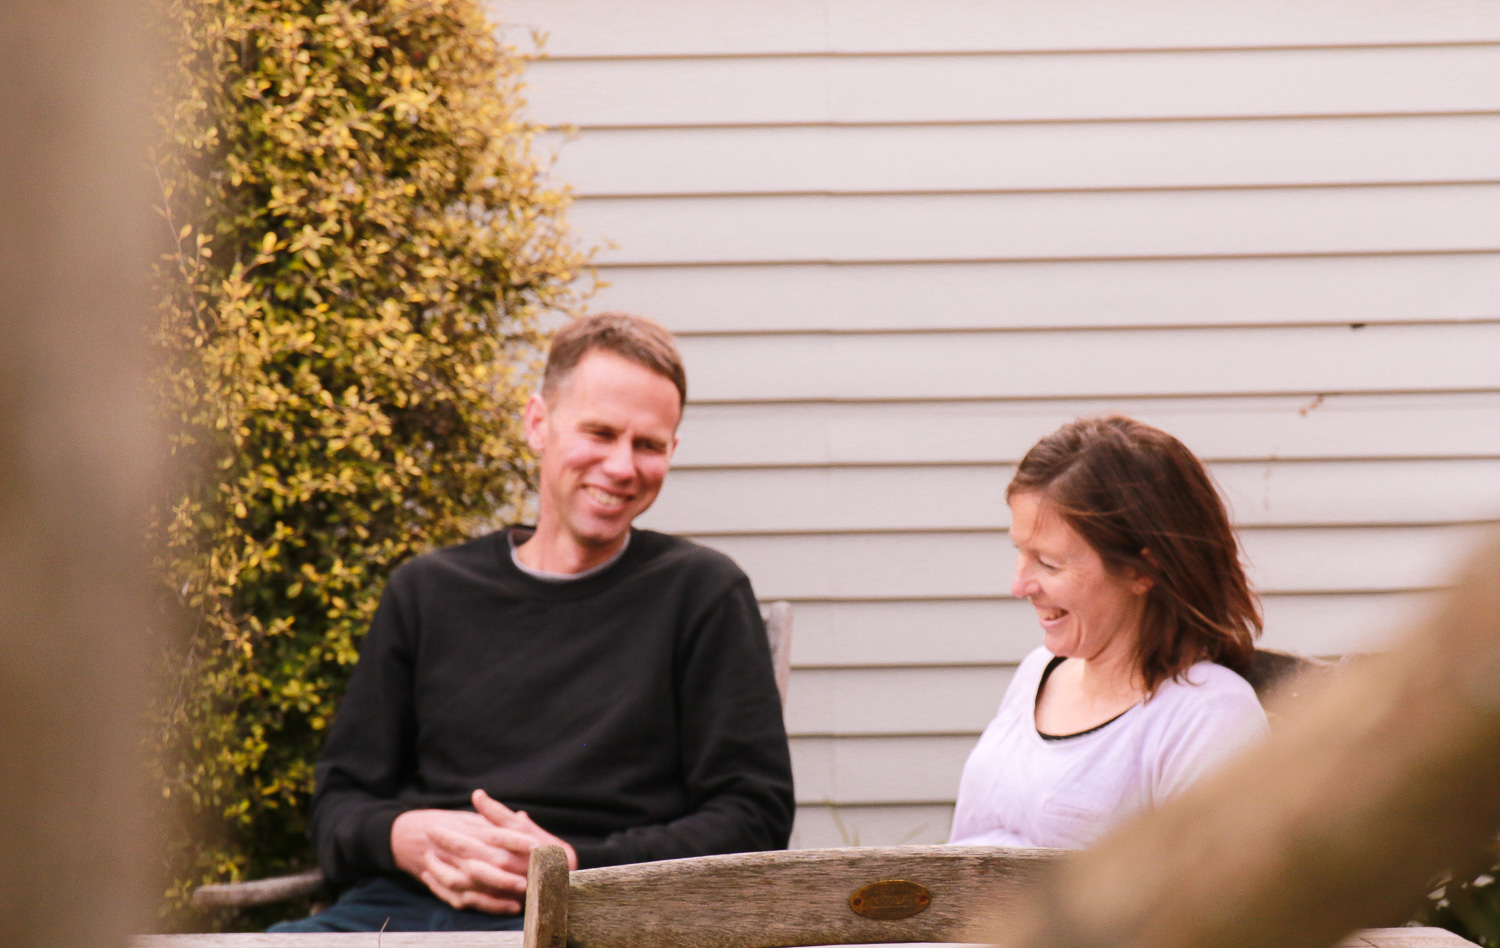 husband-and-wife-laughing-together-sitting-in-their-garden.jpg